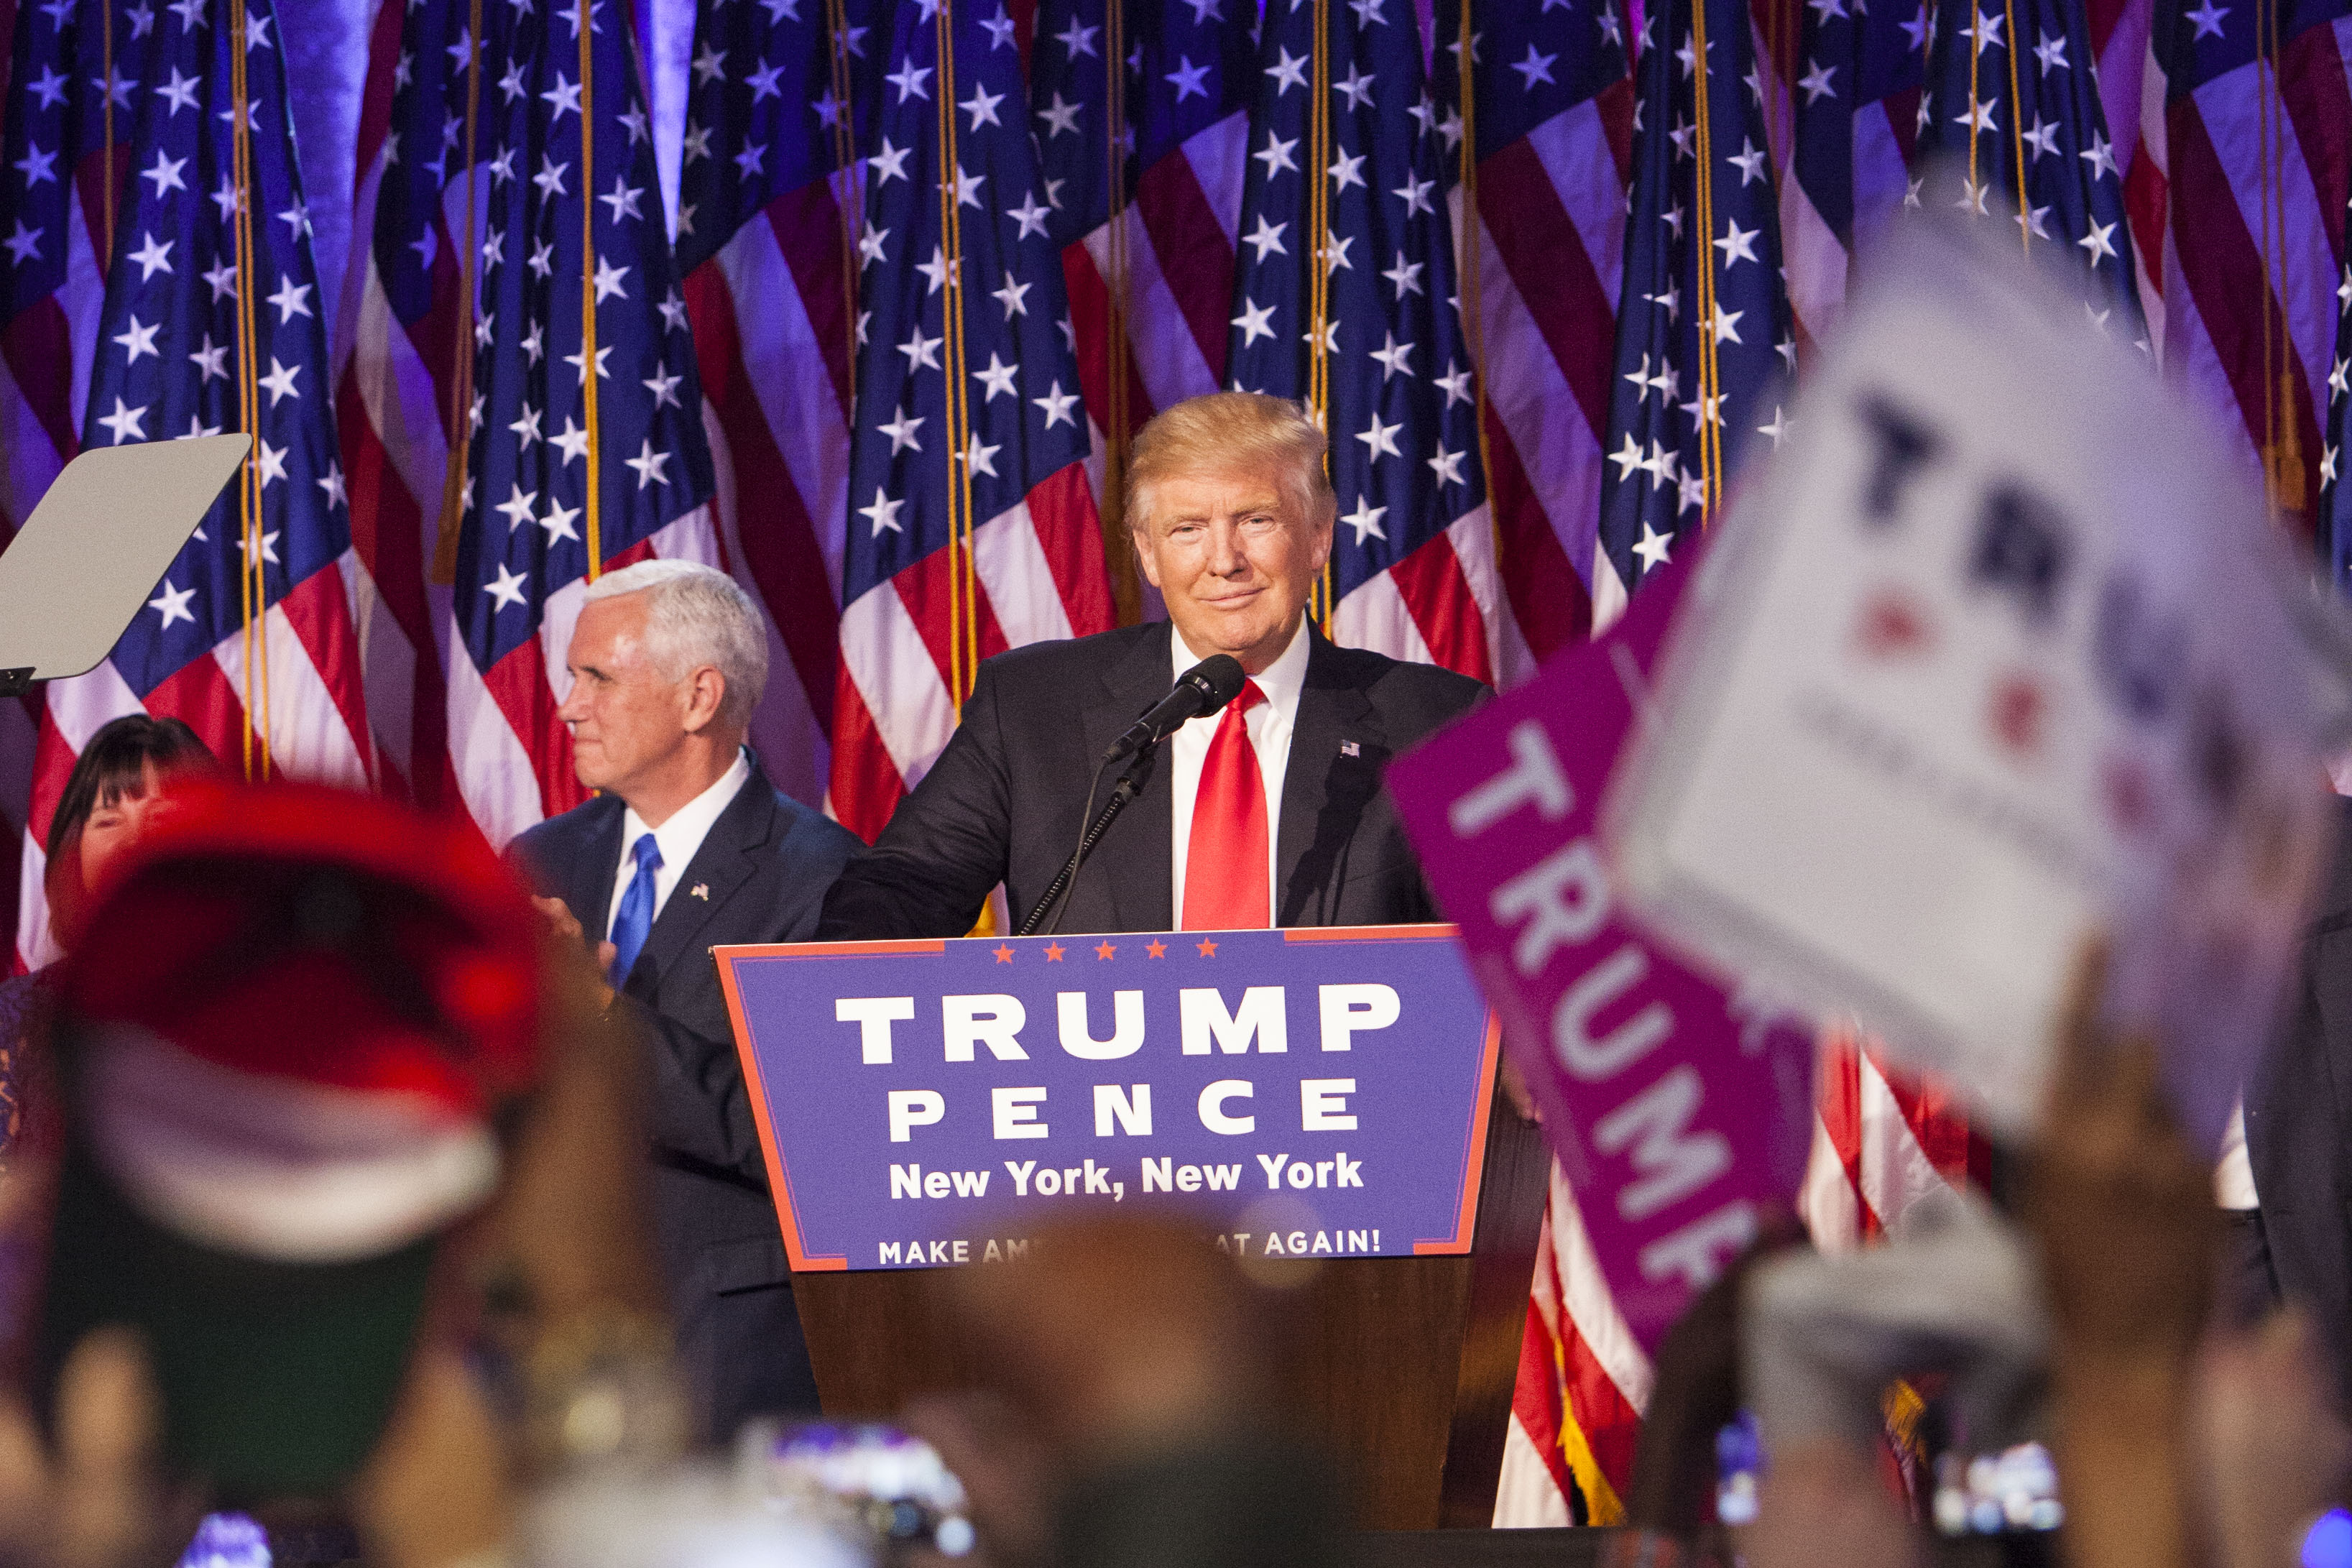 President-elect Donald Trump addresses his Victory Night party on Tuesday, Nov. 8, 2016 in New York's Manhattan borough. Trump defeated Democratic nominee Hillary Clinton in the contest for president of the United States.